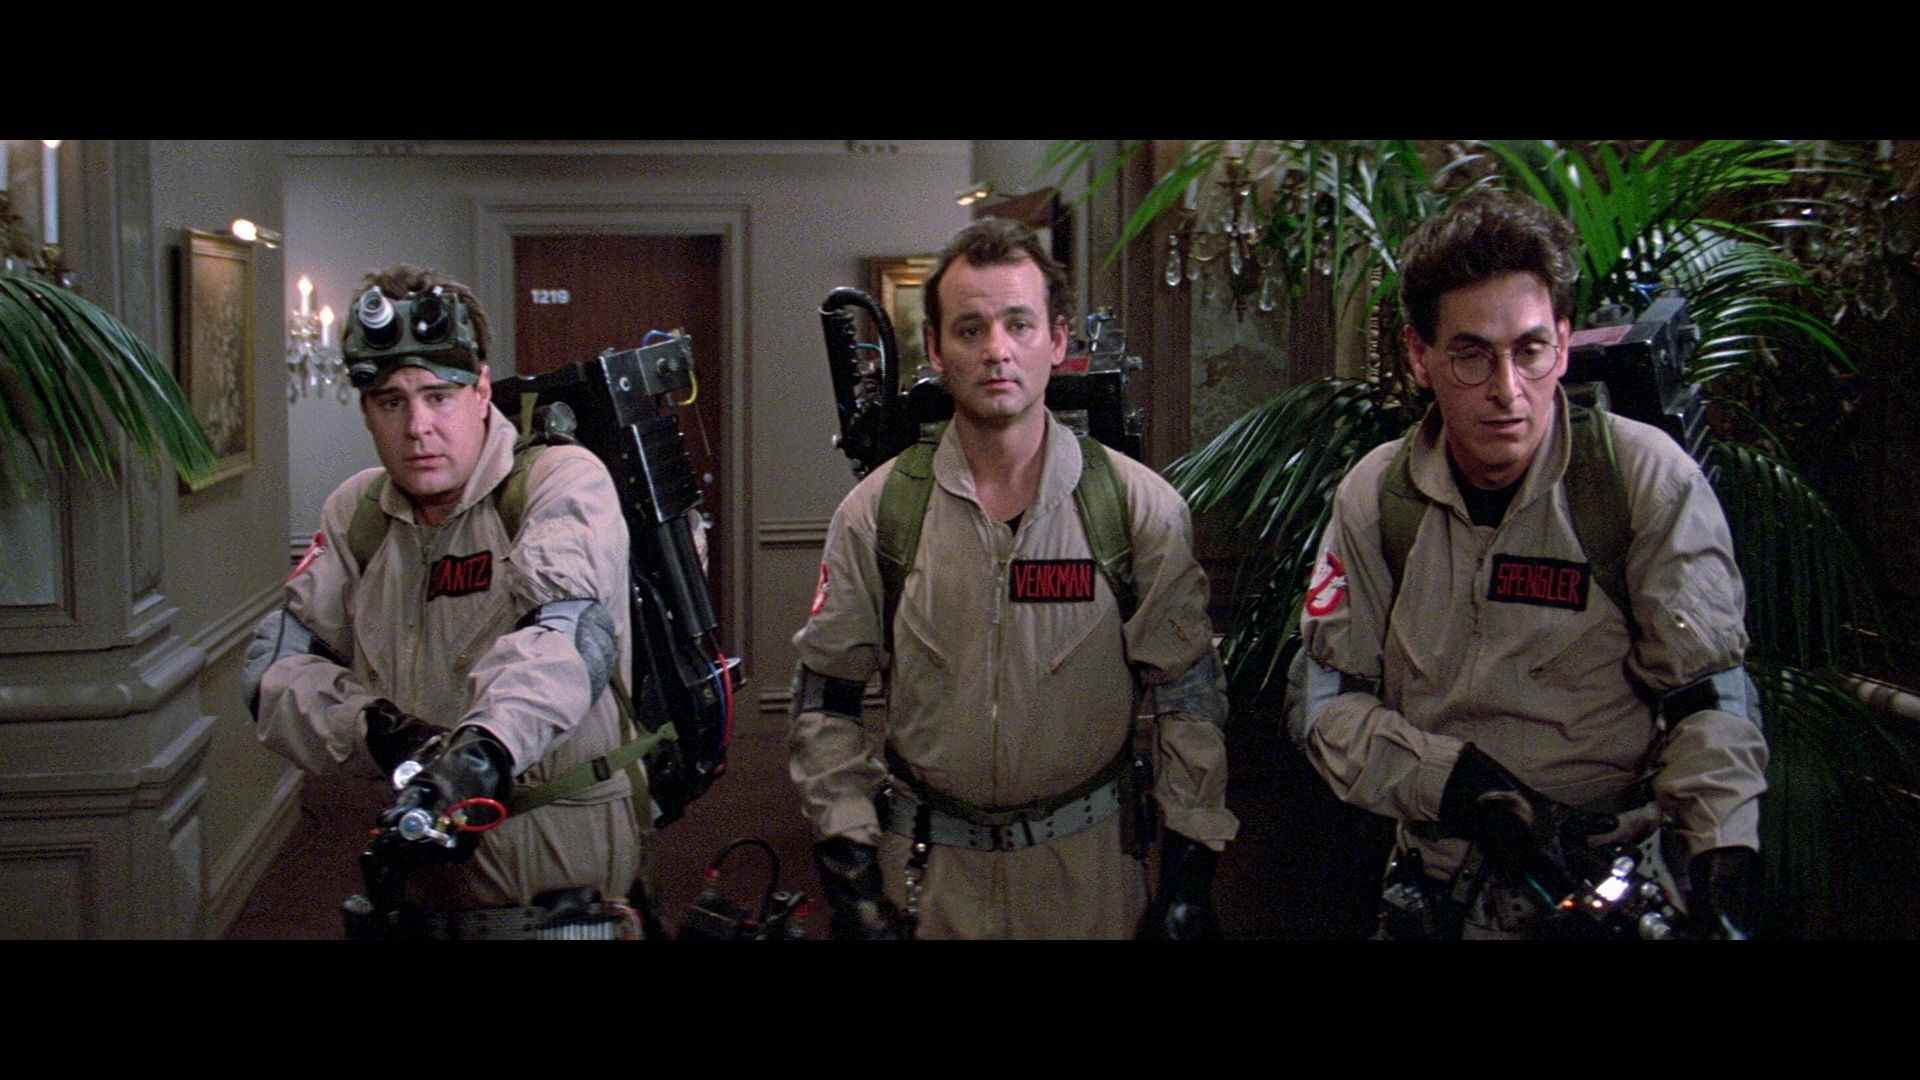 Ghostbusters-Screencaps-ghostbusters-29593772-1920-1080